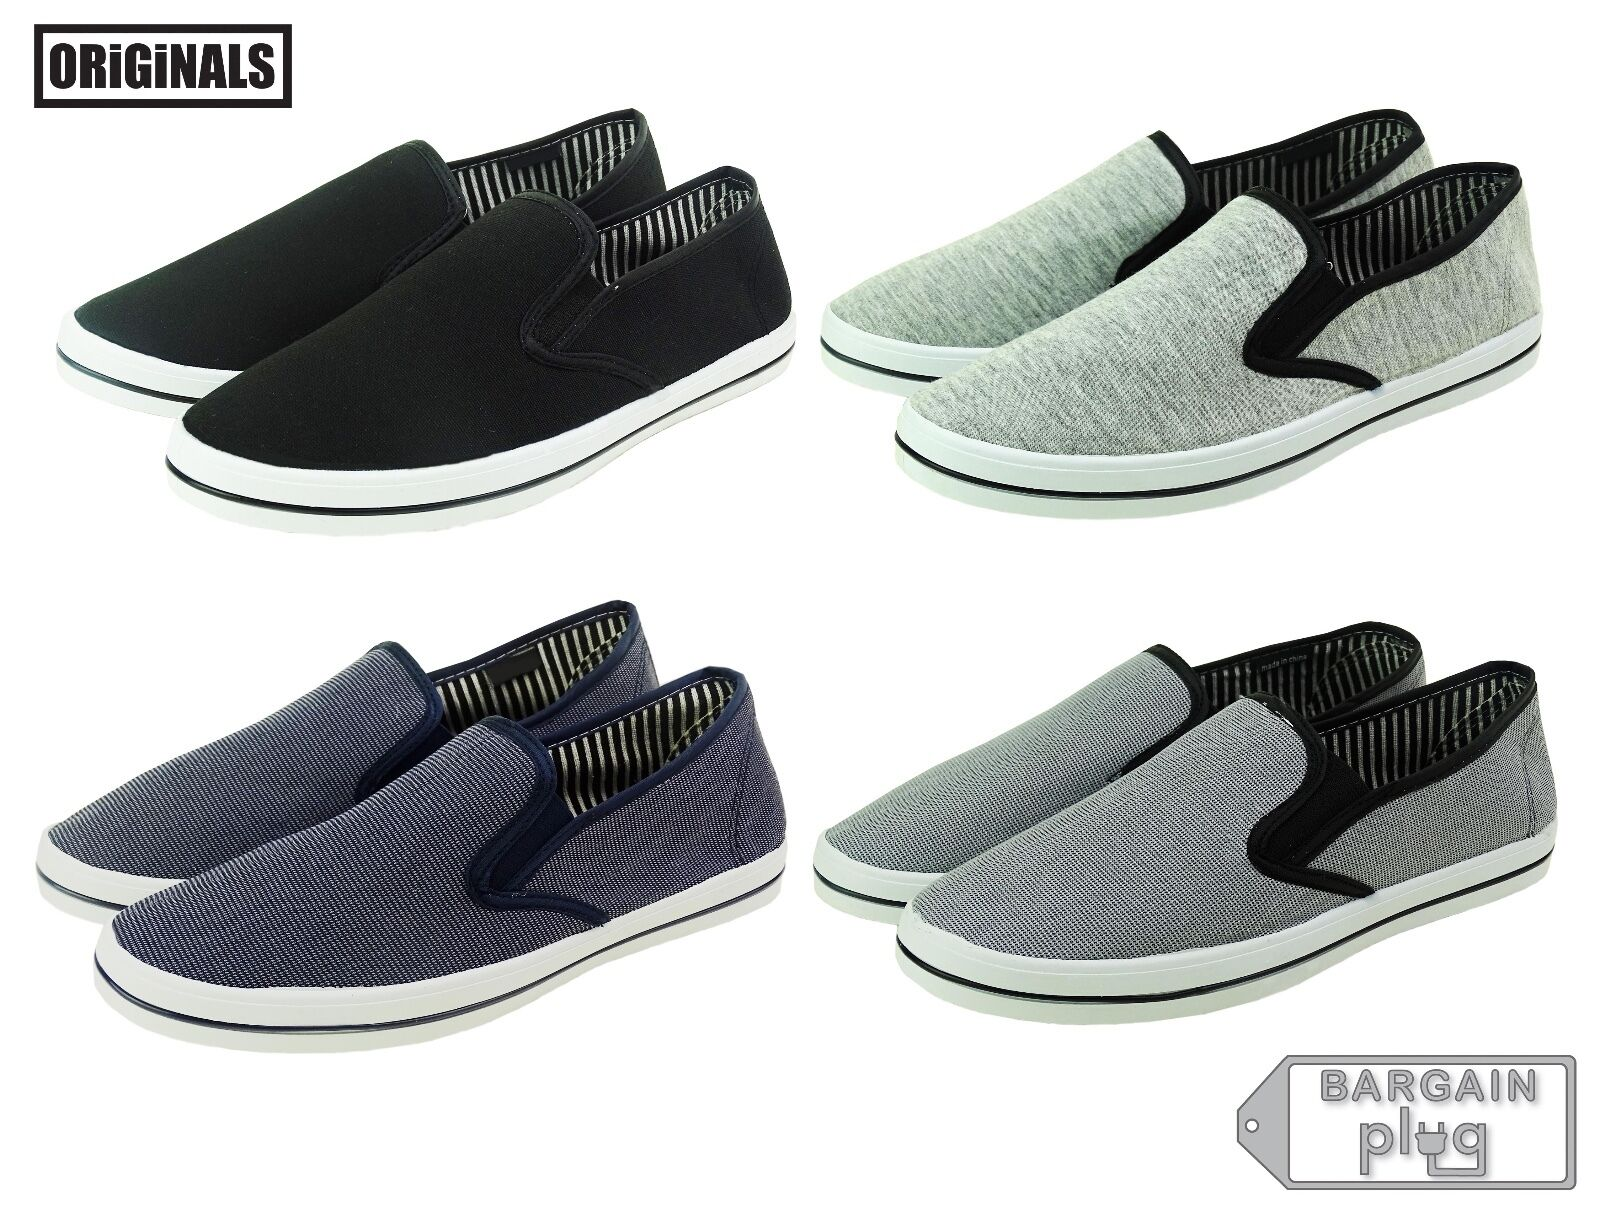 Mens Canvas Shoes Sneakers Slip On Casual Colors Sneakers Shoes Kicks Originals Lowtop Footwear d0d52b